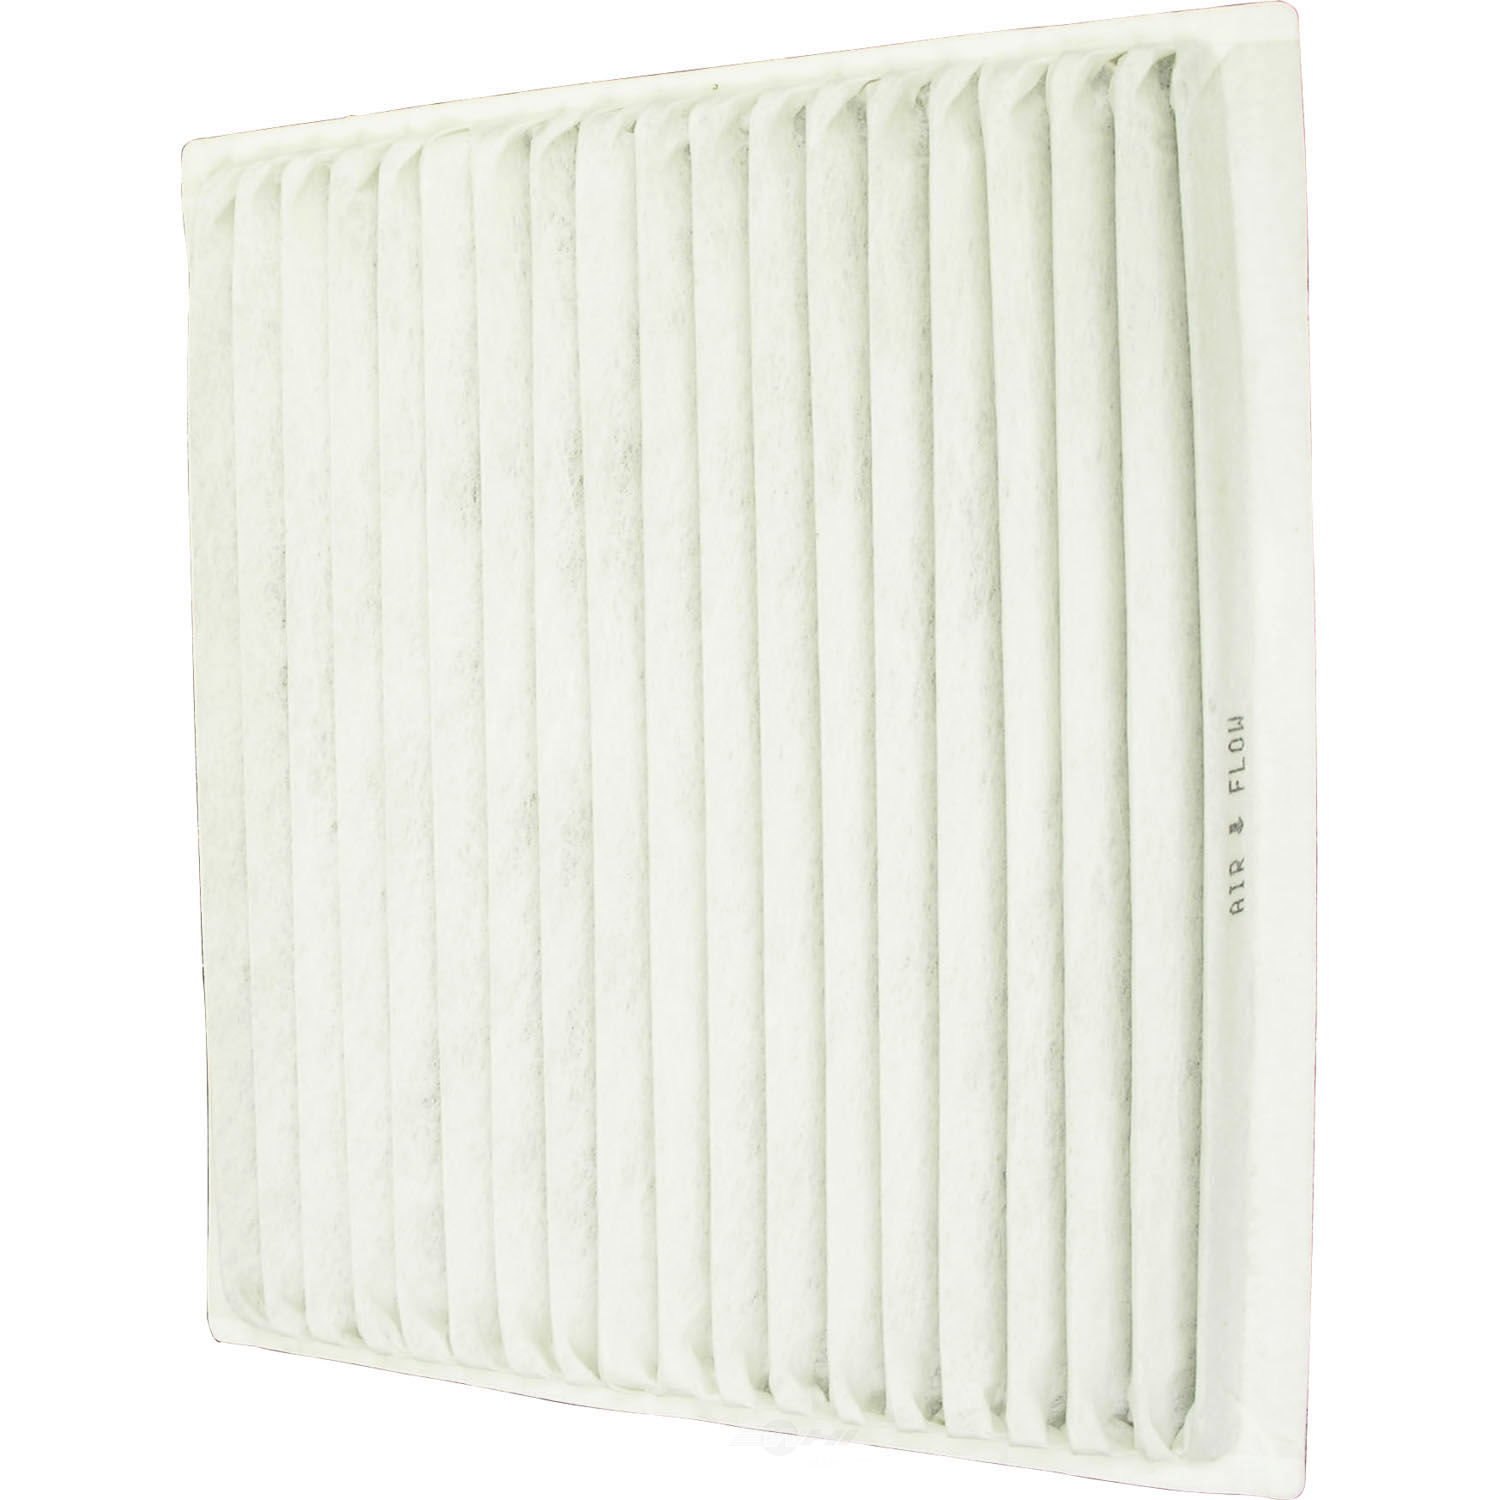 UNIVERSAL AIR CONDITIONER, INC. - Particulate Cabin Air Filter - UAC FI 1065C